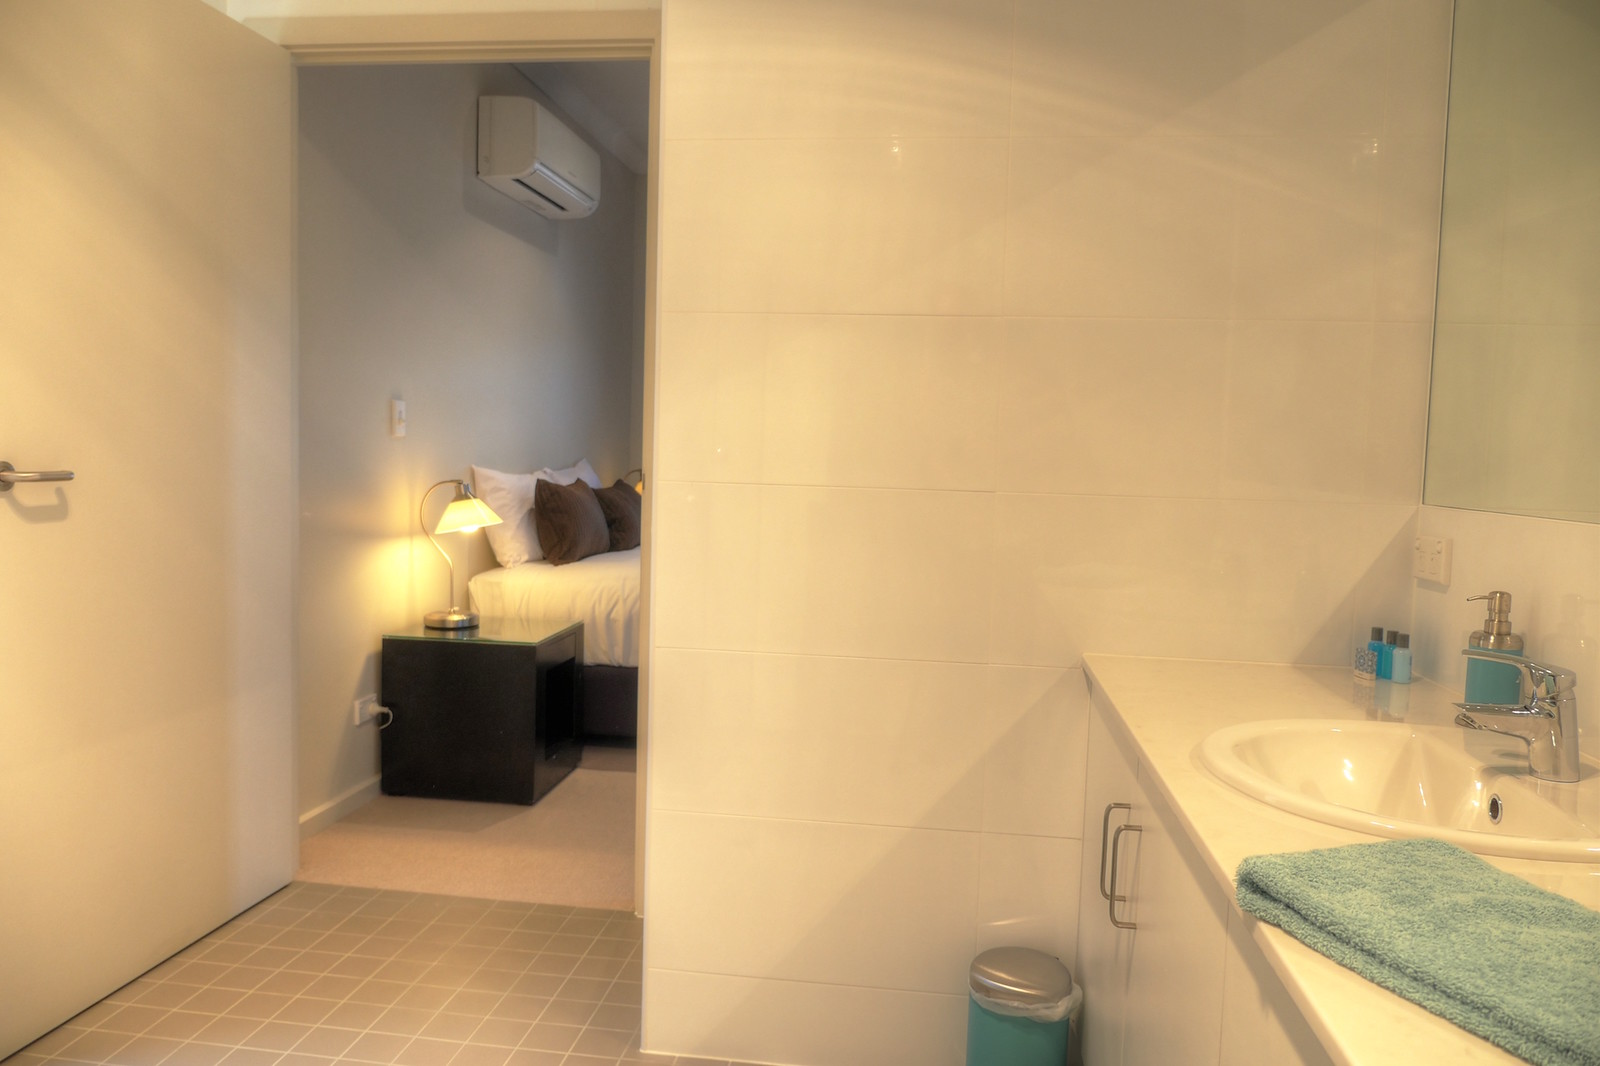 2 bedroom - bathroom-ensuite